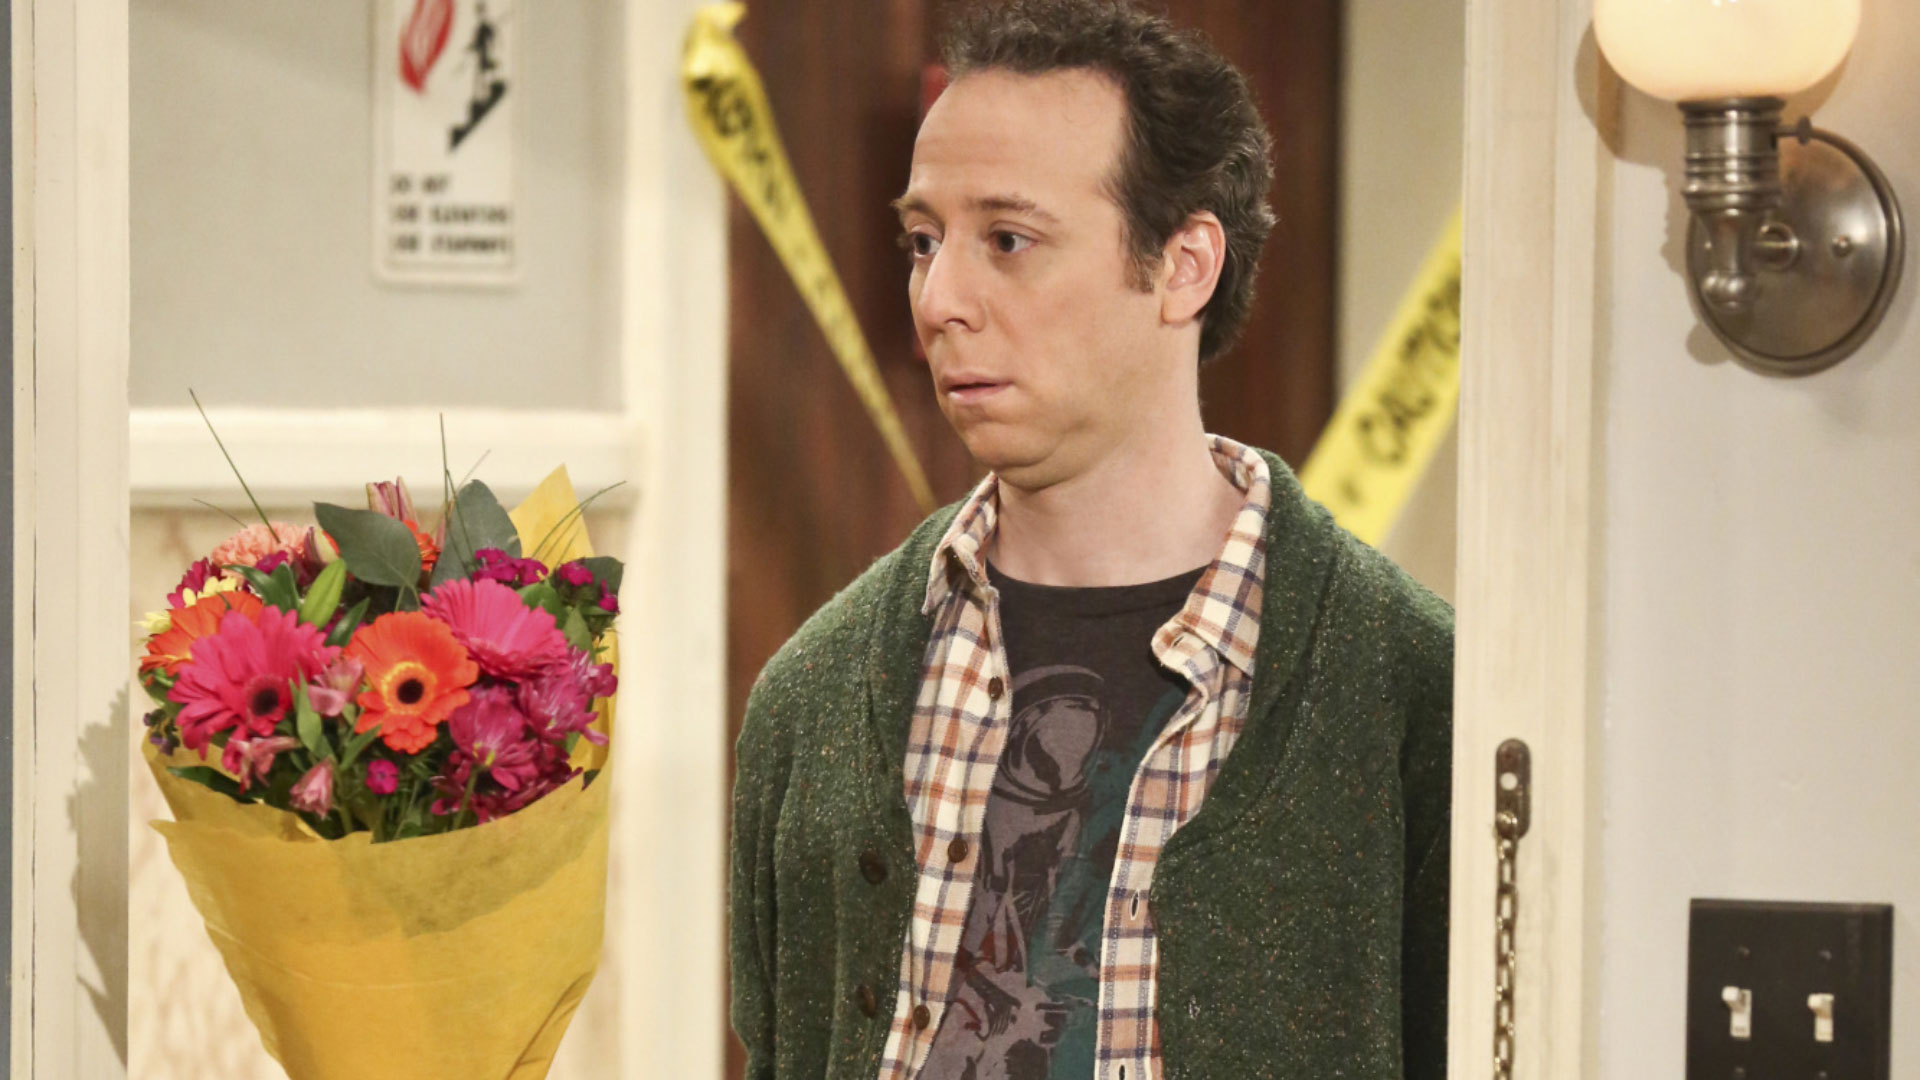 13. We laughed when Sheldon hired Stuart to make amends with Amy